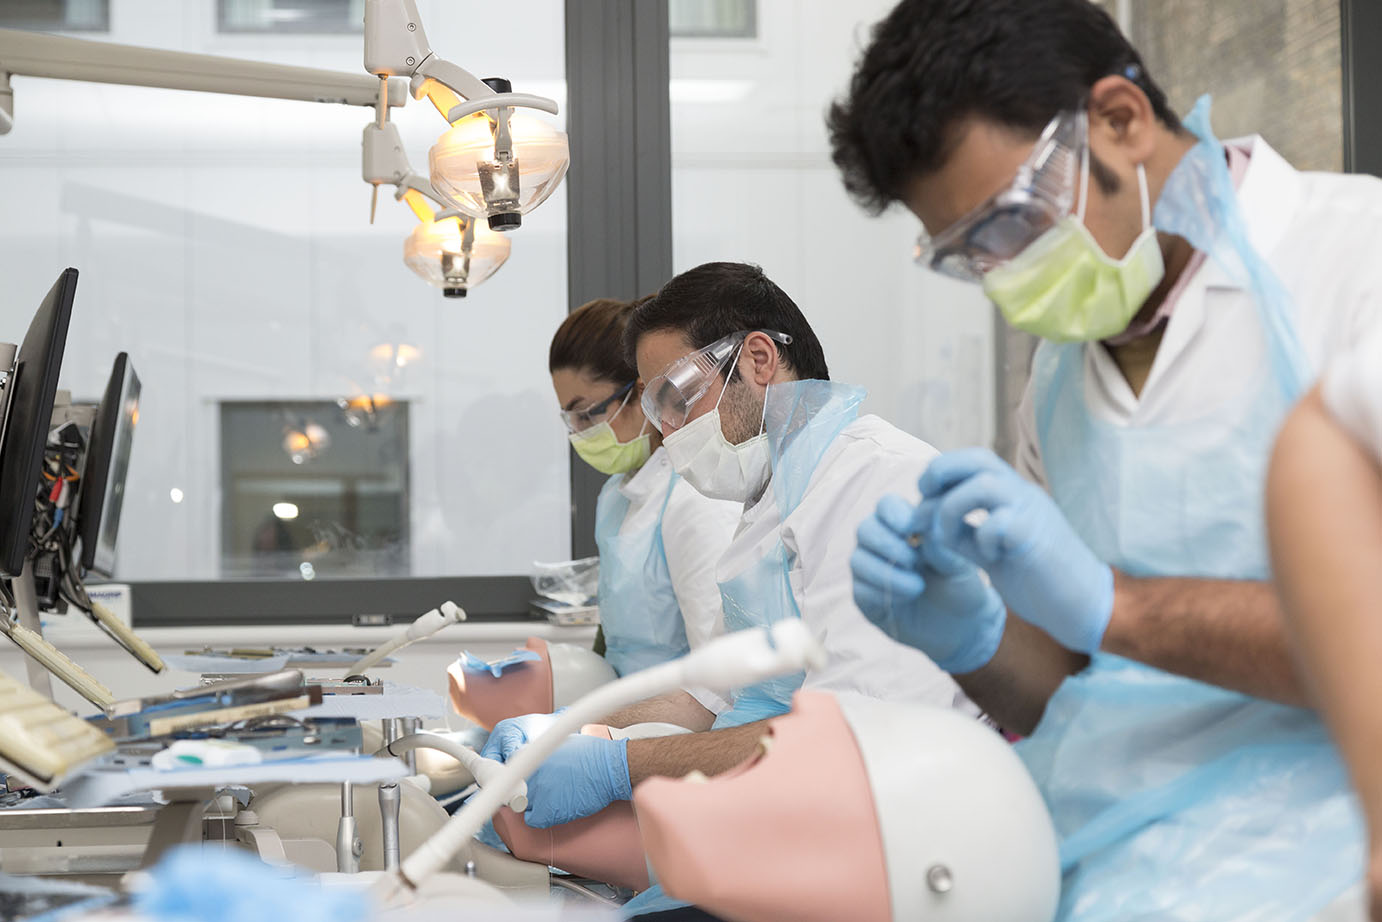 Dentistry students training using a simulation dummy